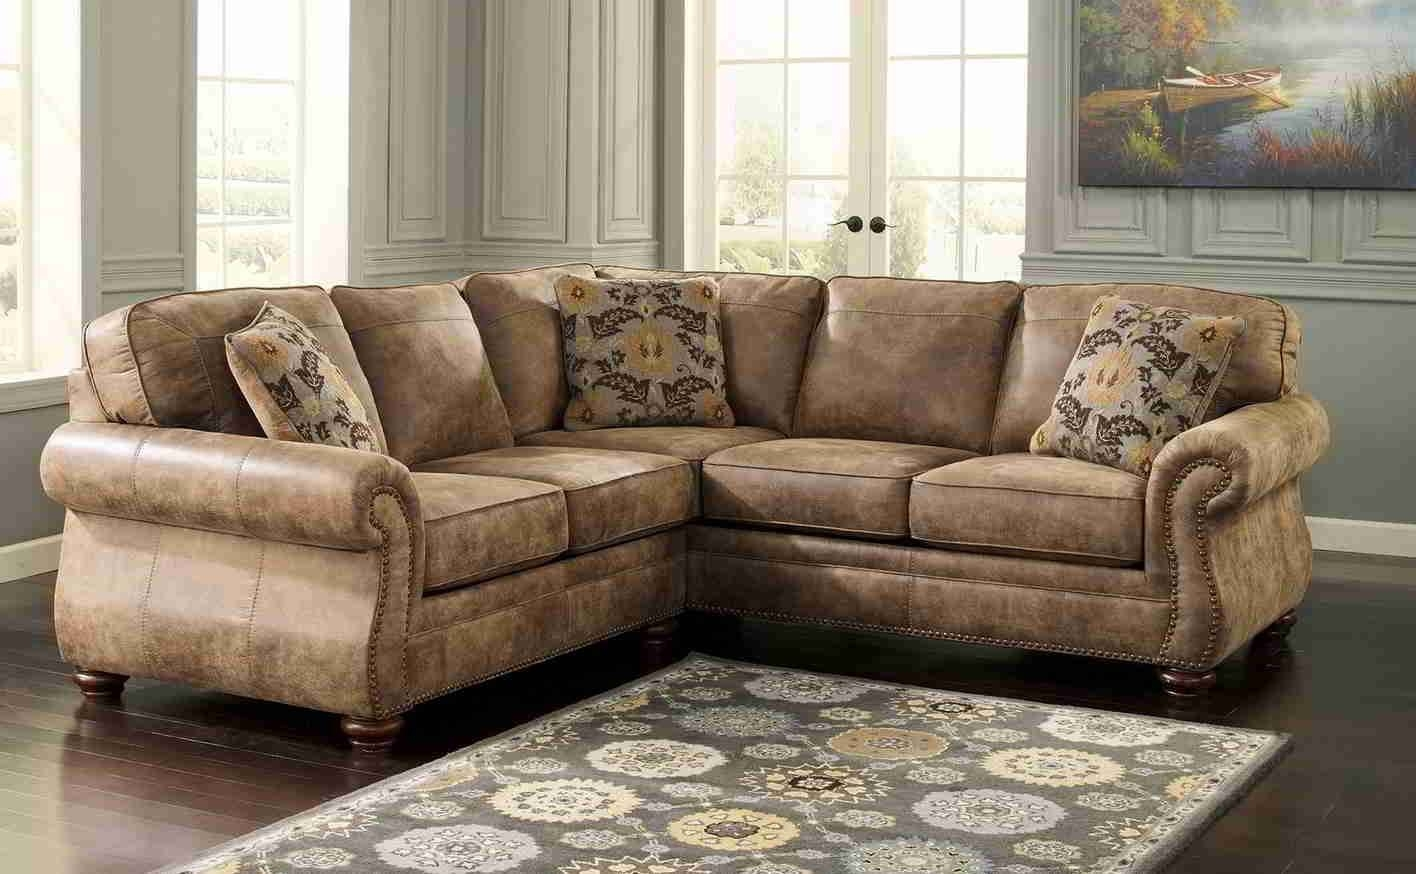 12 Photo Of Diana Dark Brown Leather Sectional Sofa Set throughout Diana Dark Brown Leather Sectional Sofa Set (Image 2 of 30)